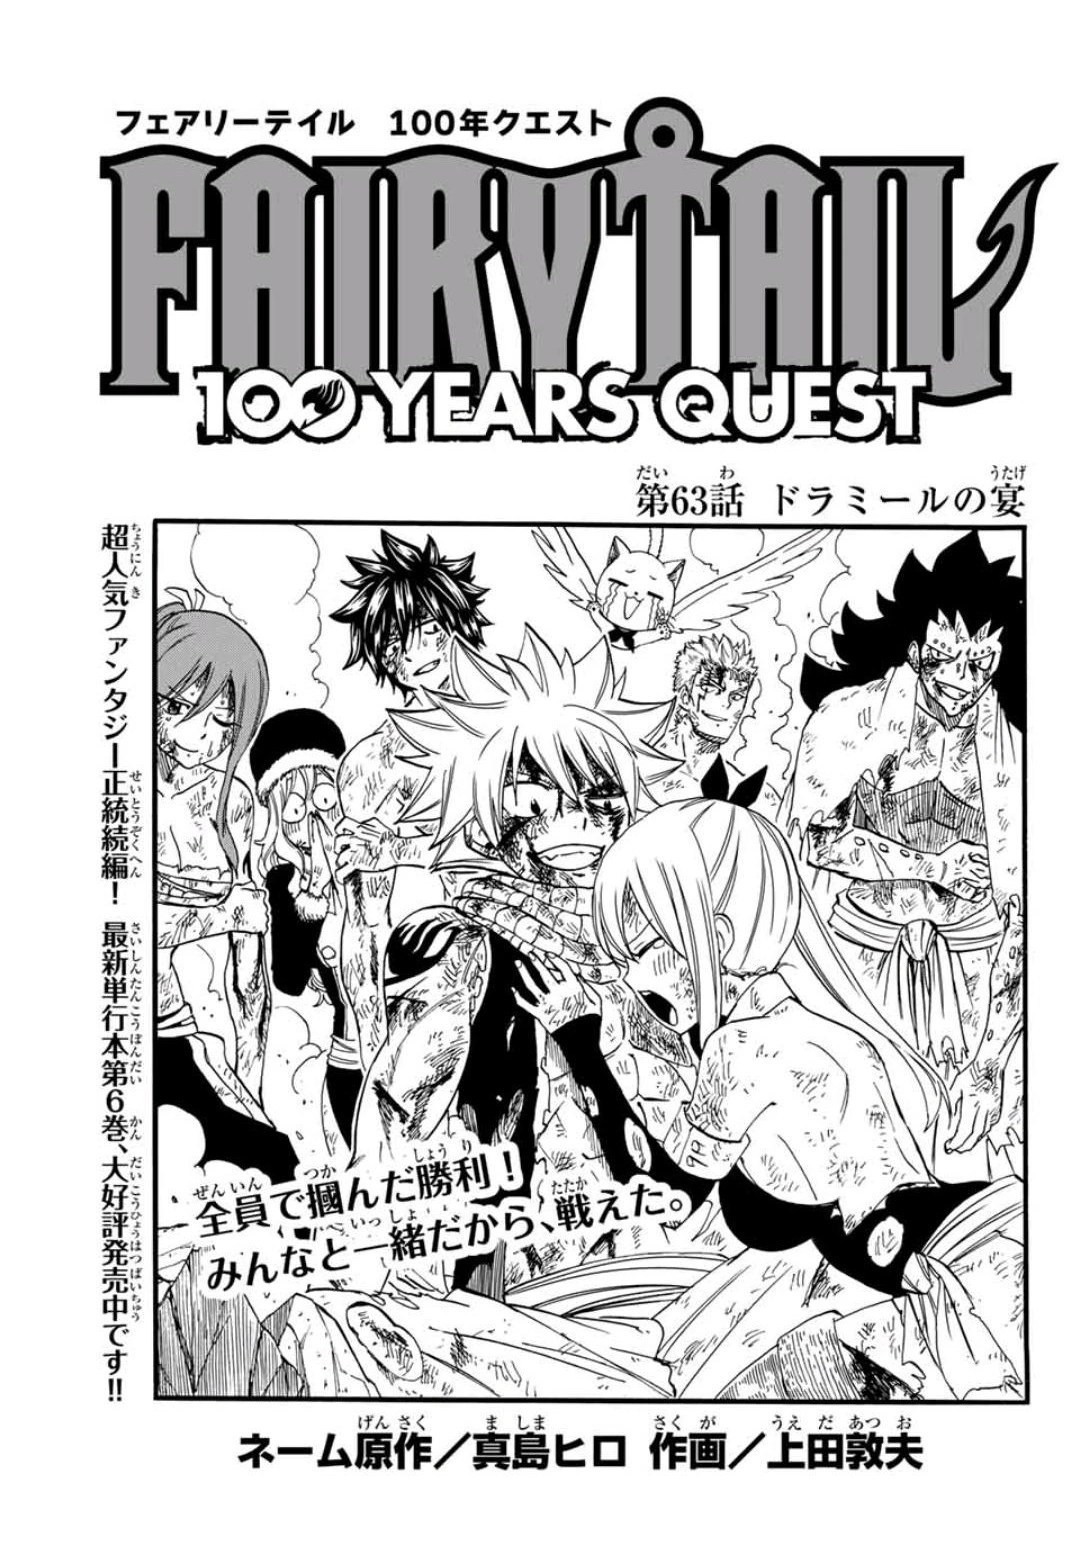 Fairy Tail 100 Years Quest Anime : fairy, years, quest, anime, Fairy, Tail:, Years, Quest, Chapter, Fandom